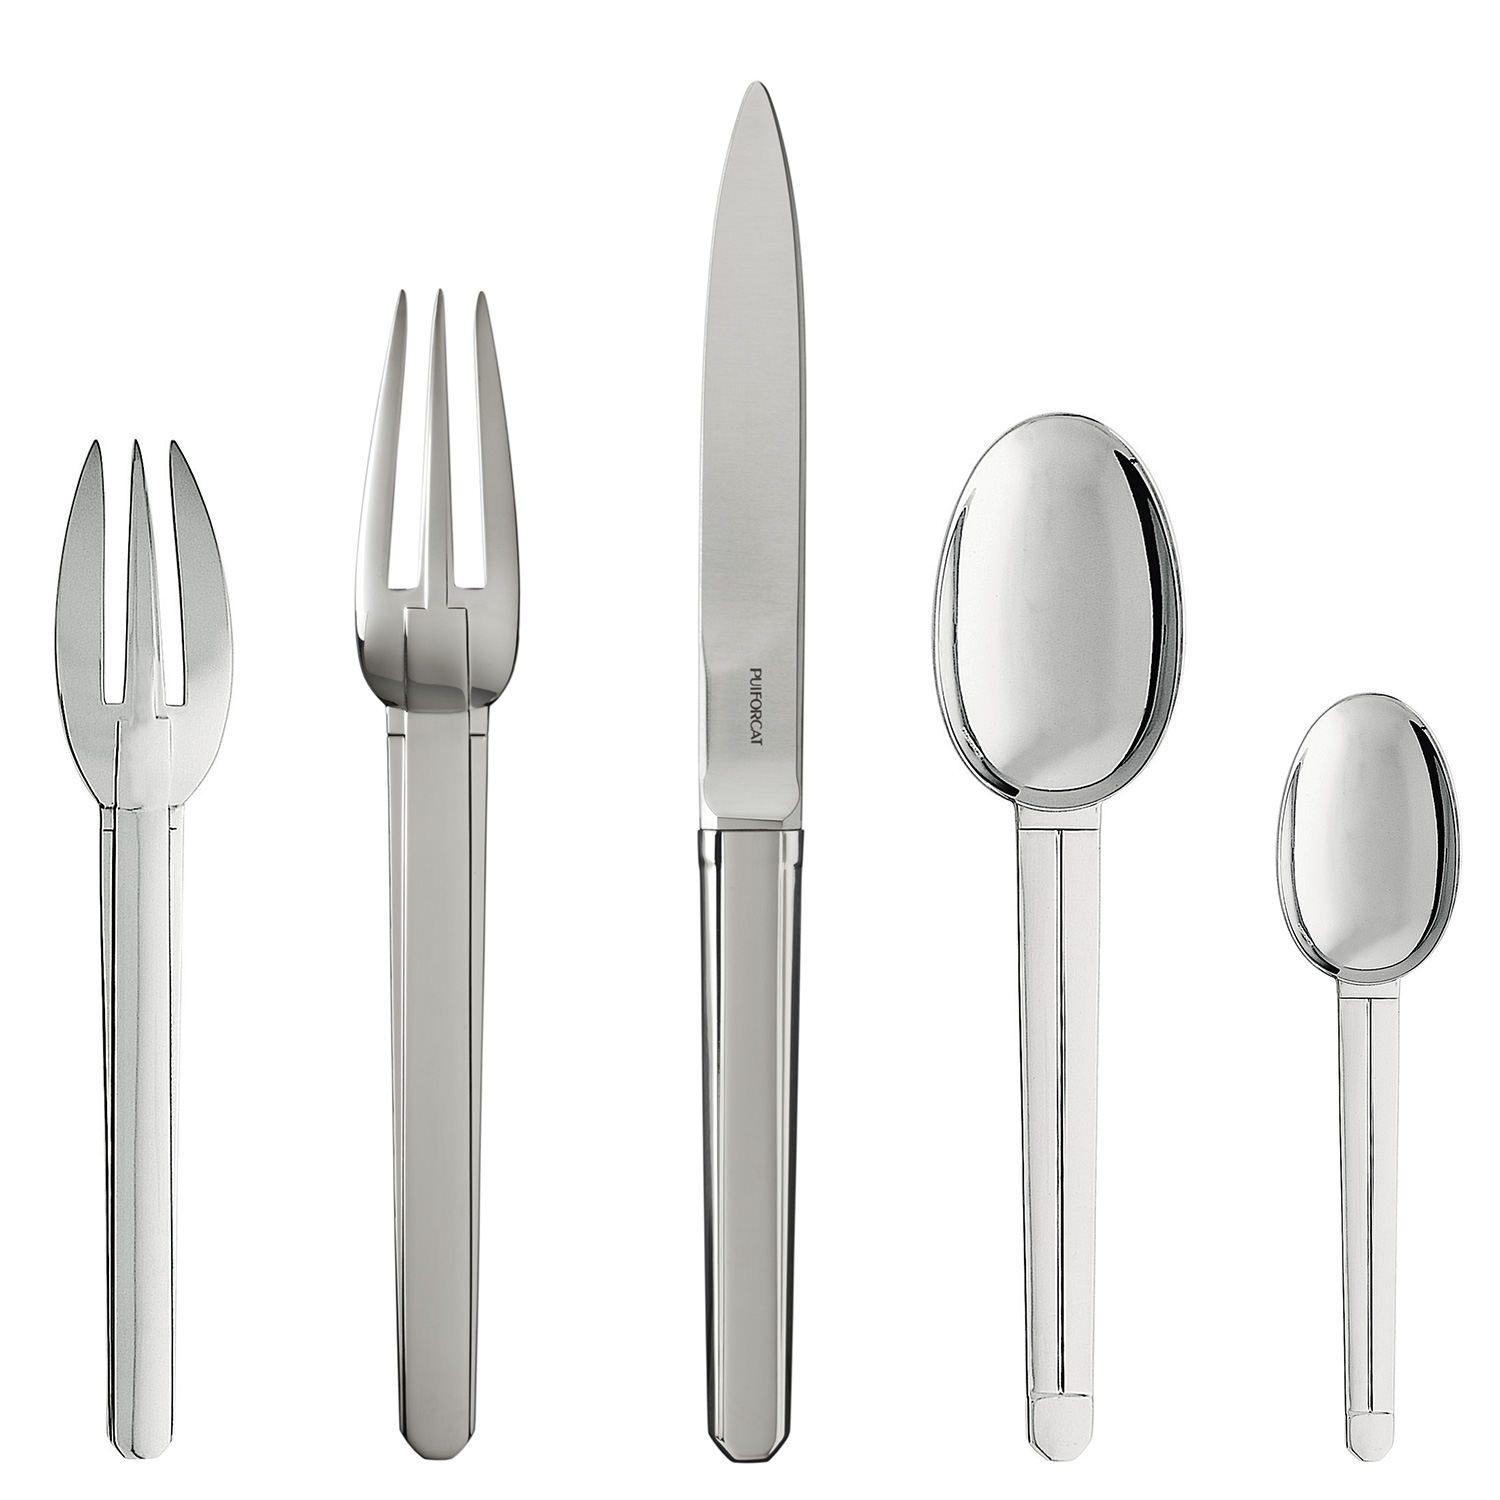 5 Piece Place Setting - Dessert Spoon